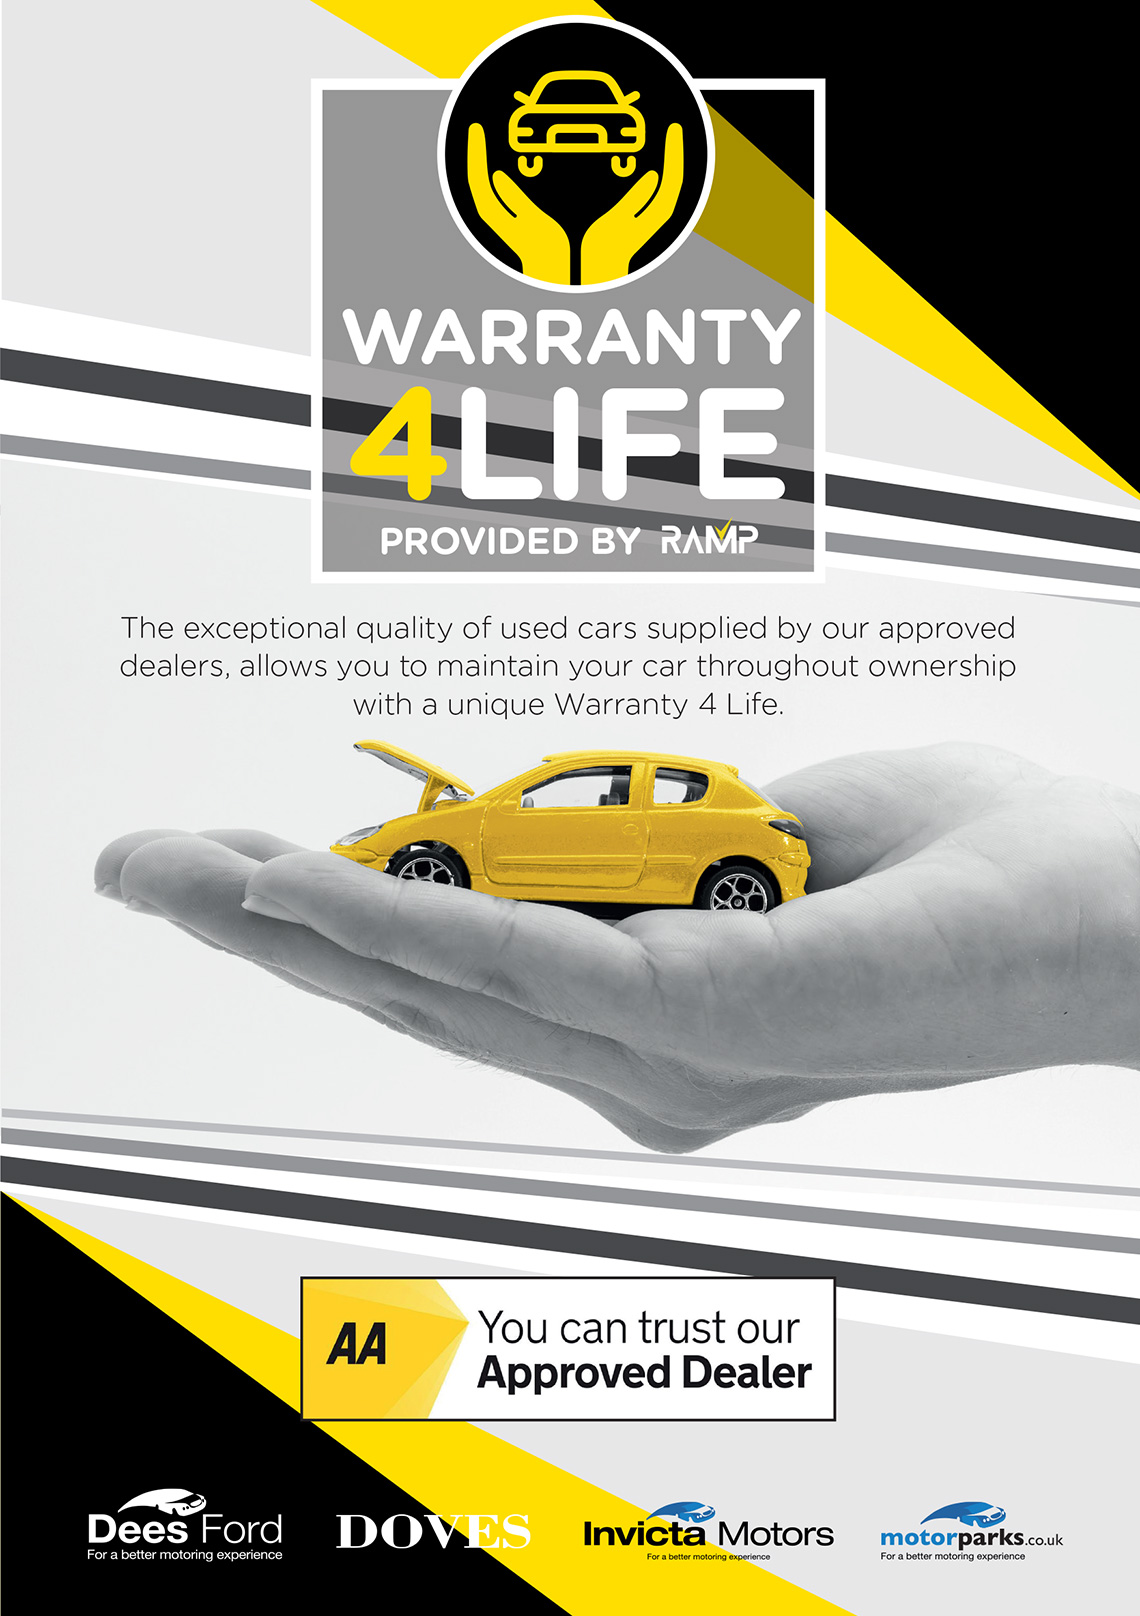 Warranty 4 Life at Motorparks Car Dealers